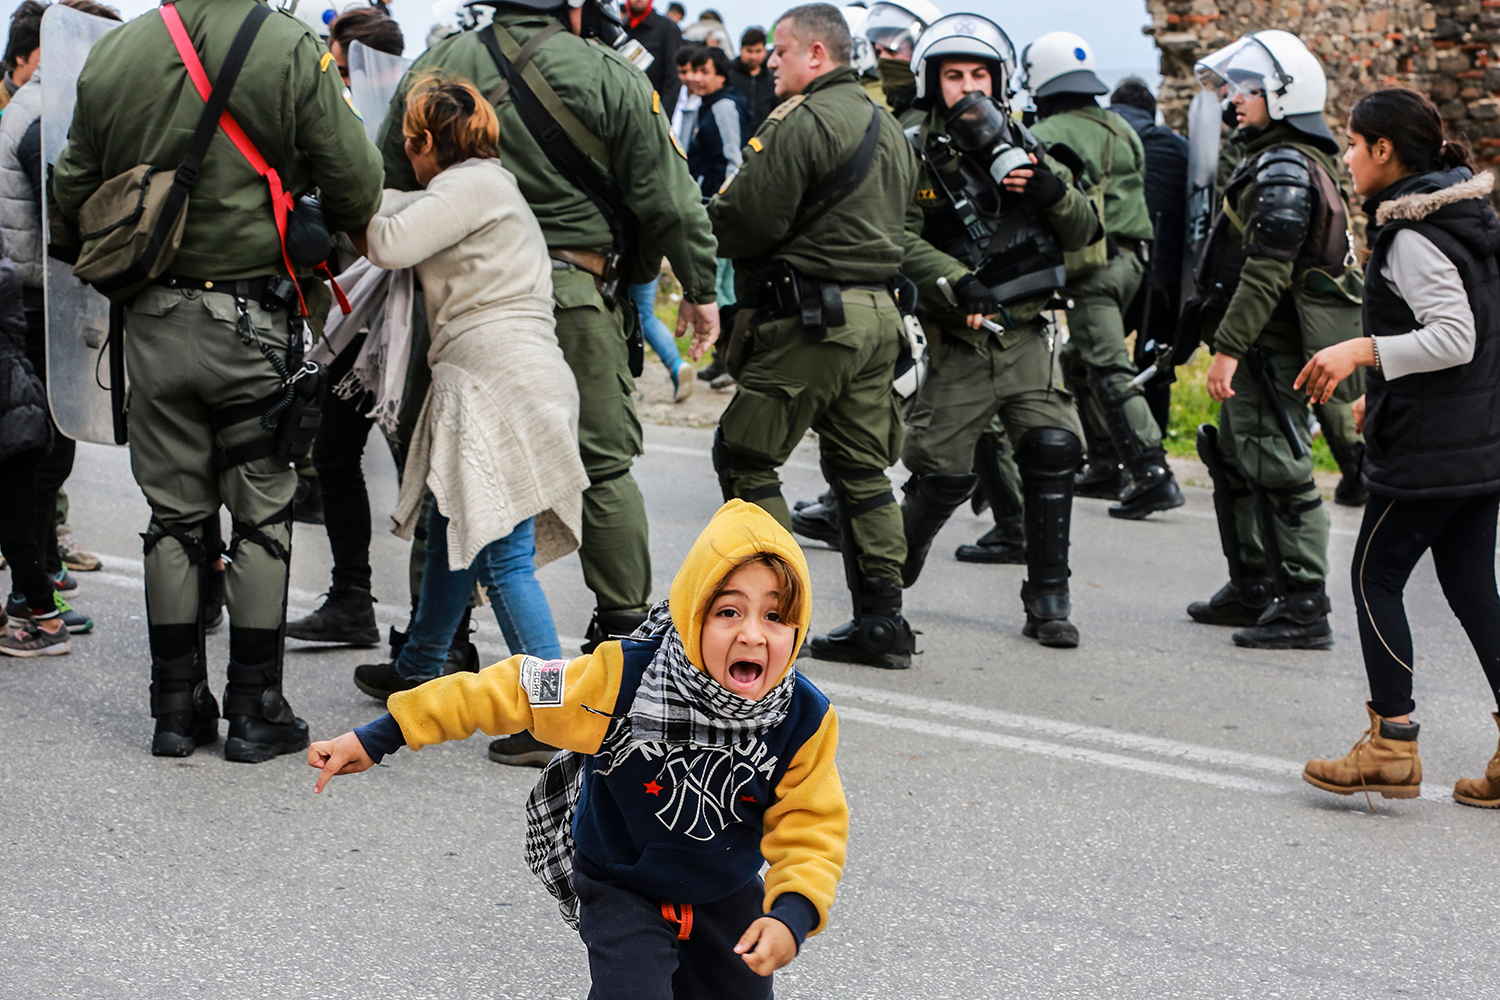 A young migrant reacts during clashes with riot police as refugees and migrants demonstrate outside the Kara Tepe camp, on the Greek island of Lesbos, on Feb. 3. MANOLIS LAGOUTARIS/AFP via Getty Images